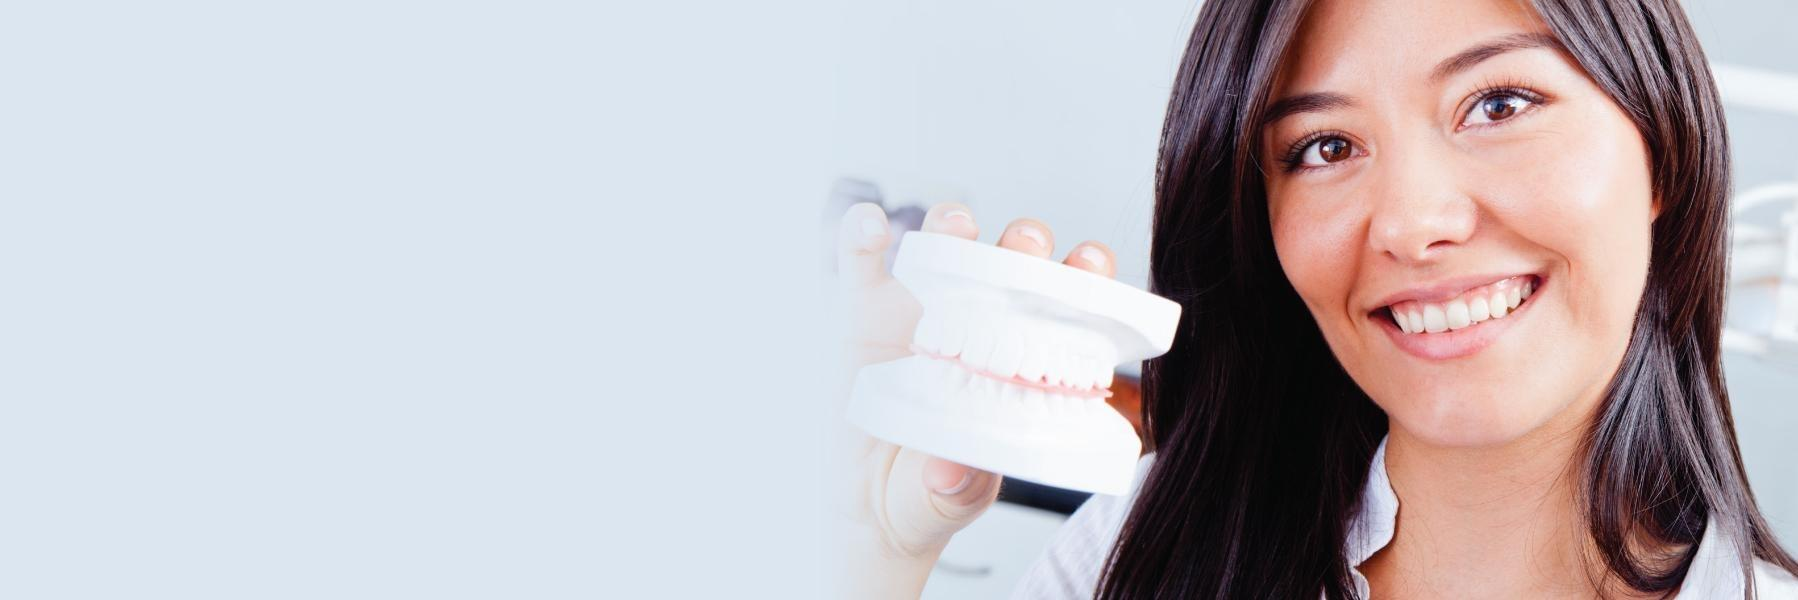 Emergency Dental Services in Springfield, MO